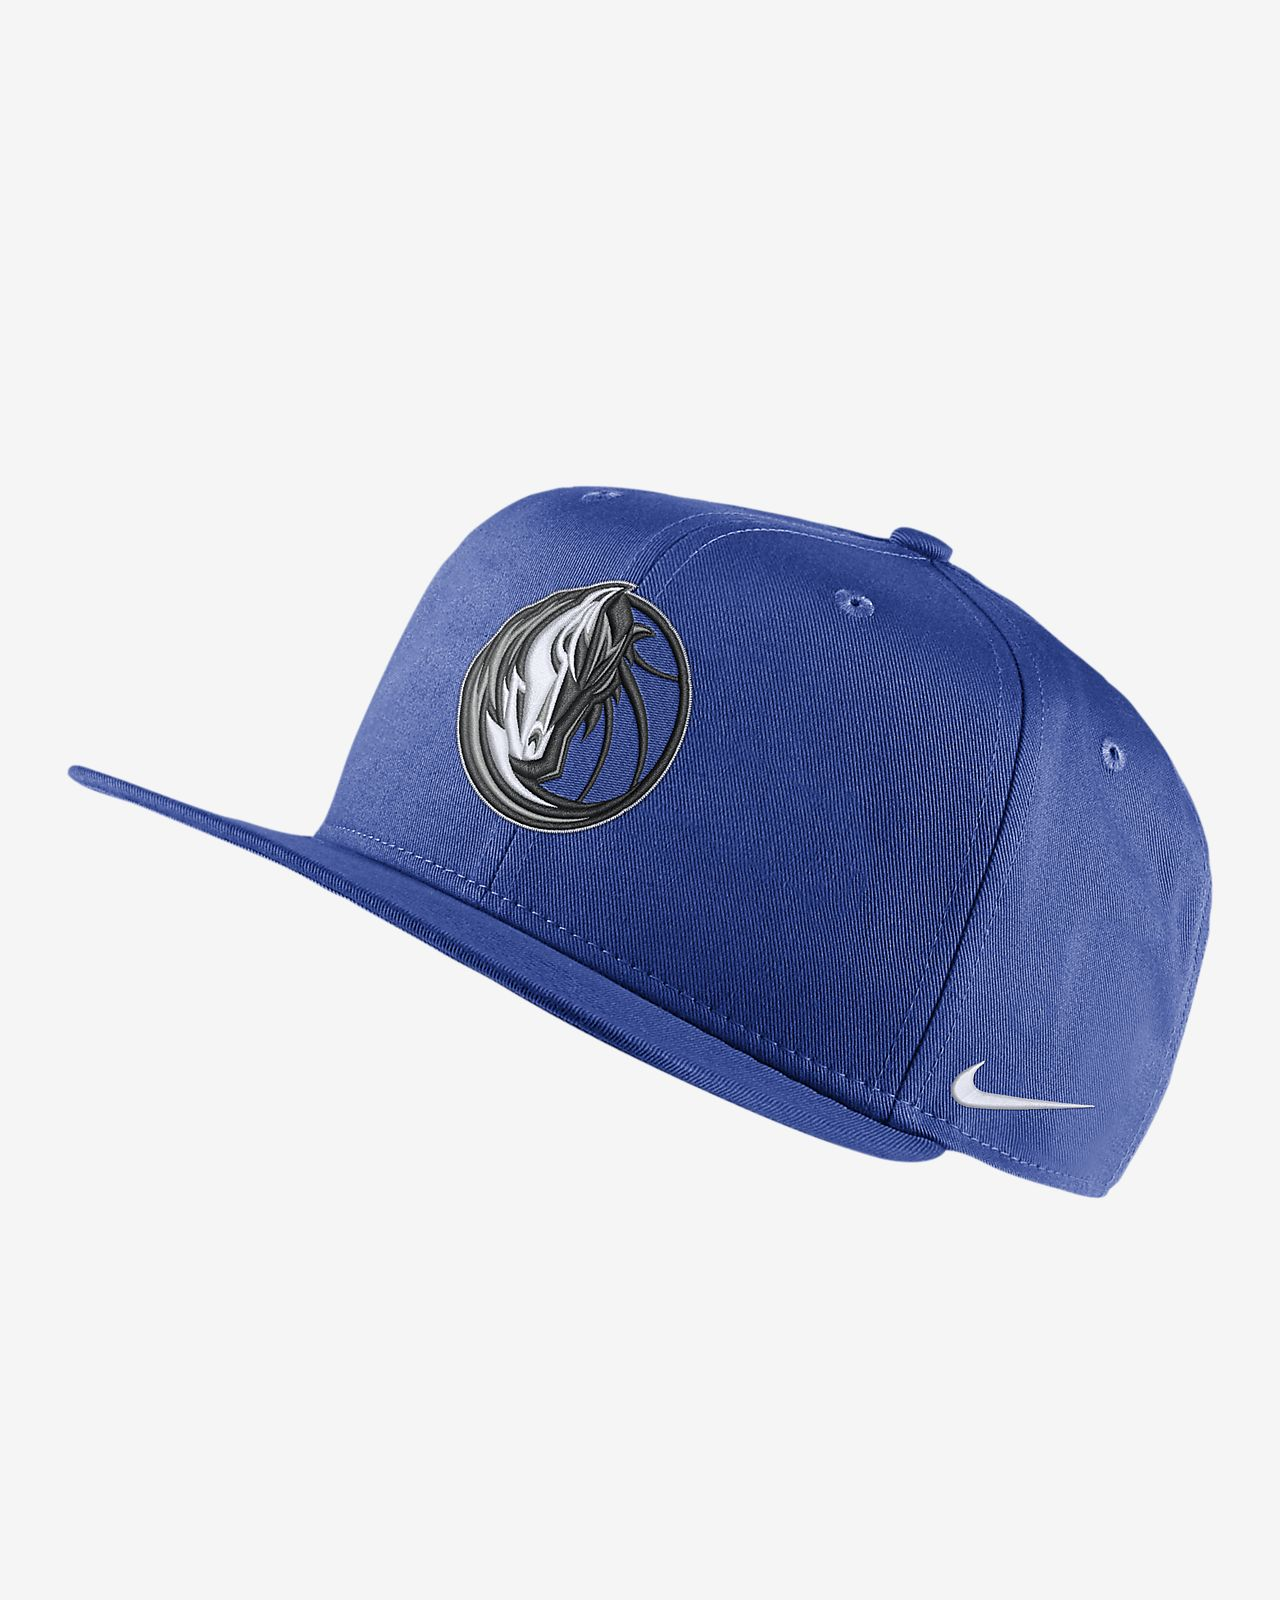 Dallas Mavericks Nike Pro NBA Cap